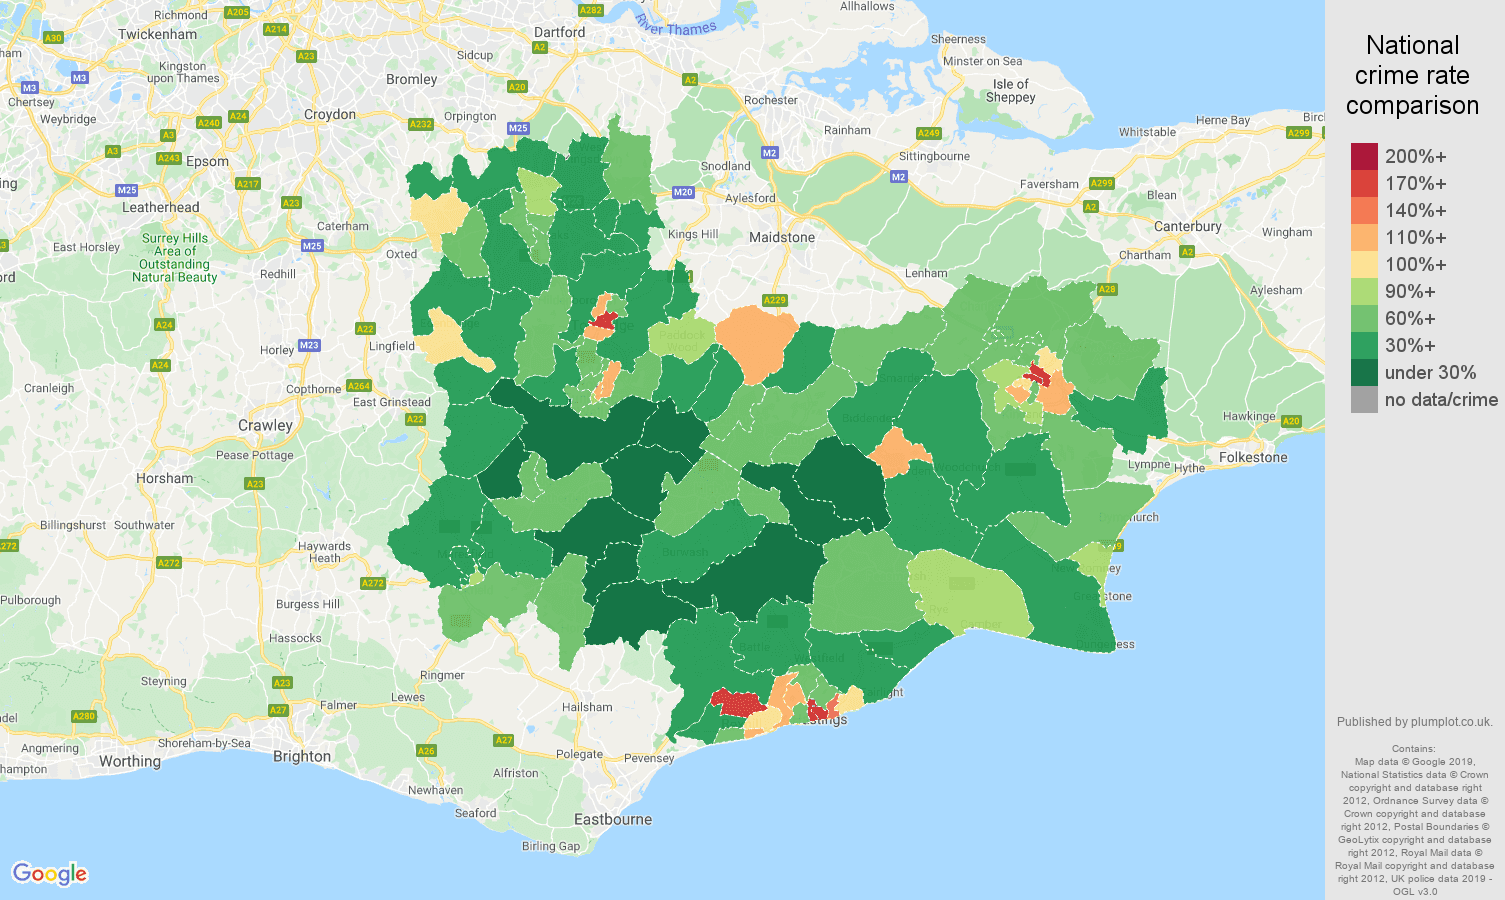 Tonbridge public order crime rate comparison map